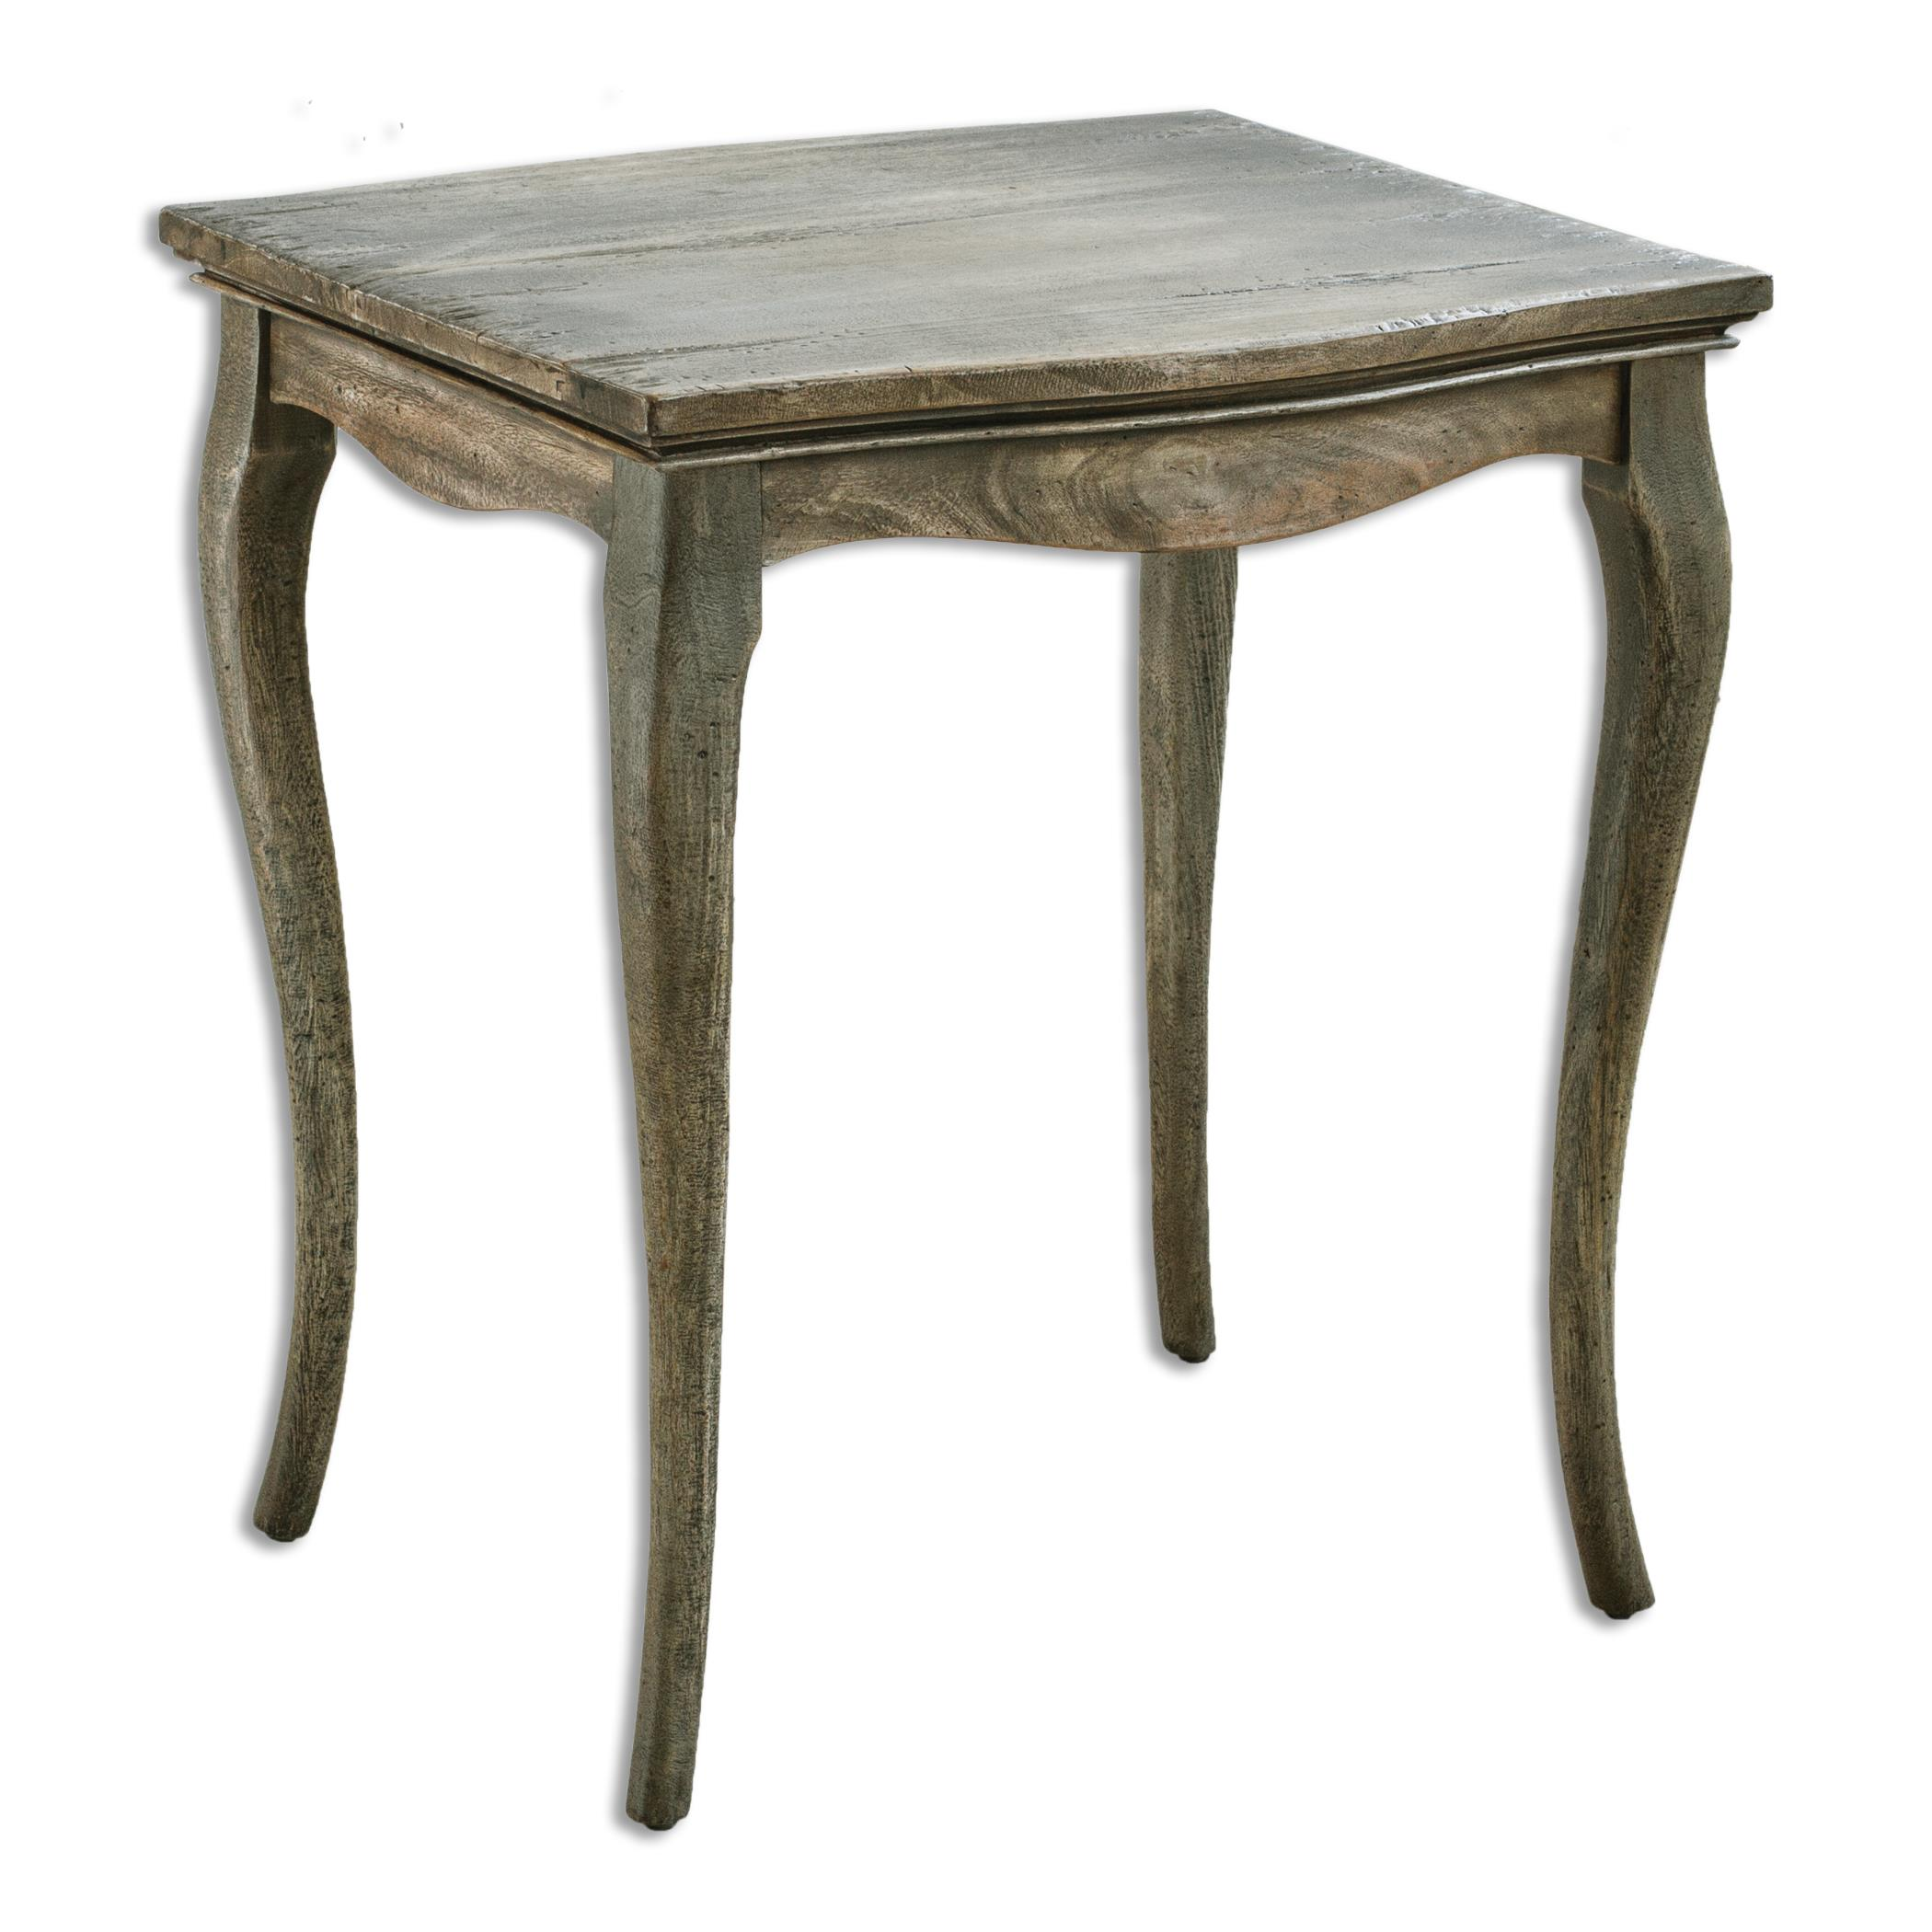 Uttermost Accent Furniture Gabri Driftwood Side Table - Item Number: 25667